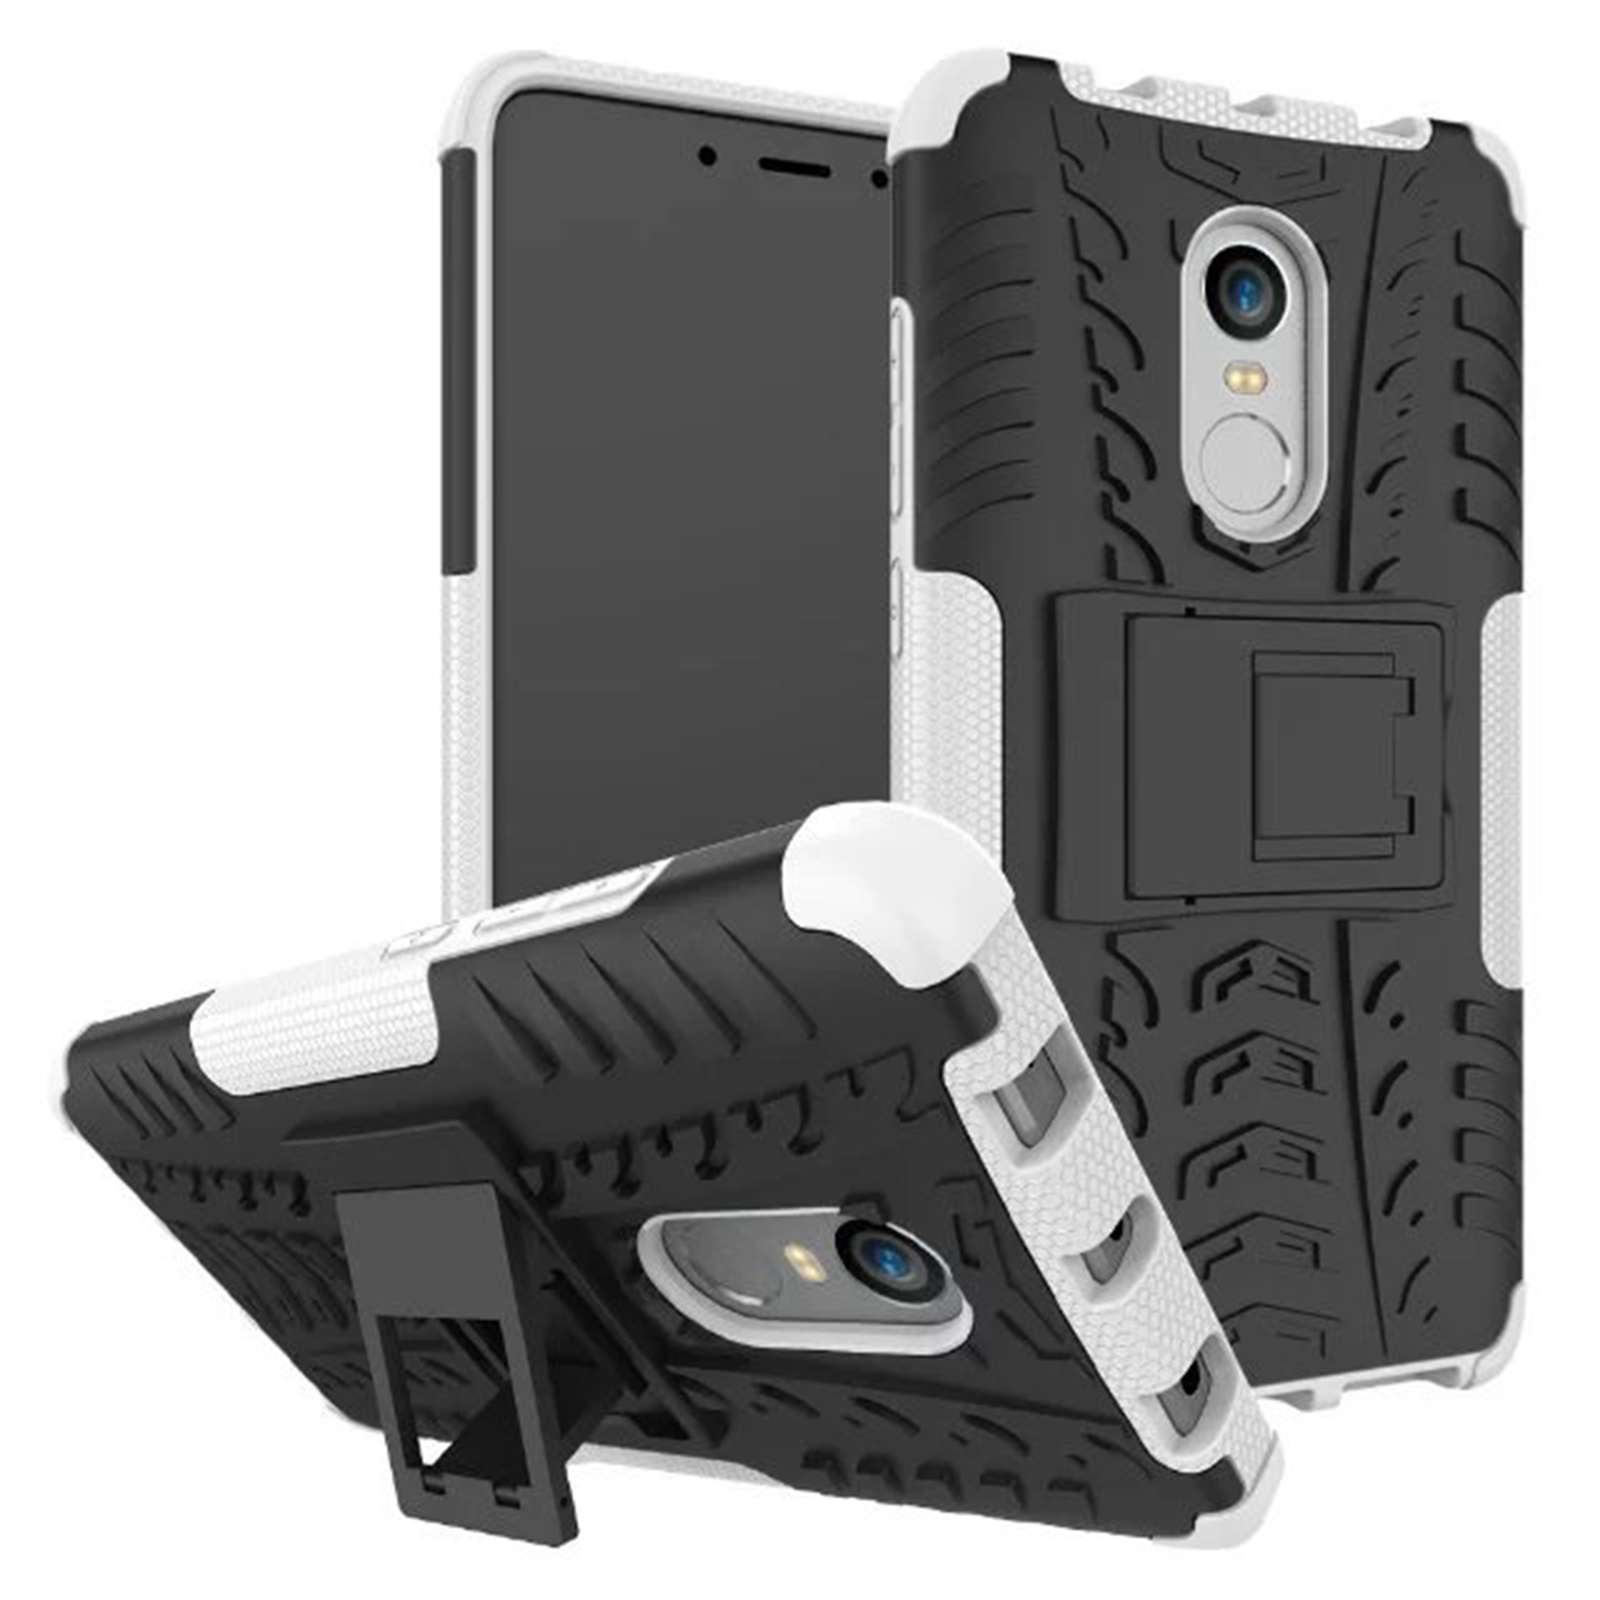 Details about For Xiaomi Redmi Note 4 4X Hard Hybrid Double Armor Stand Shockproof Case Cover